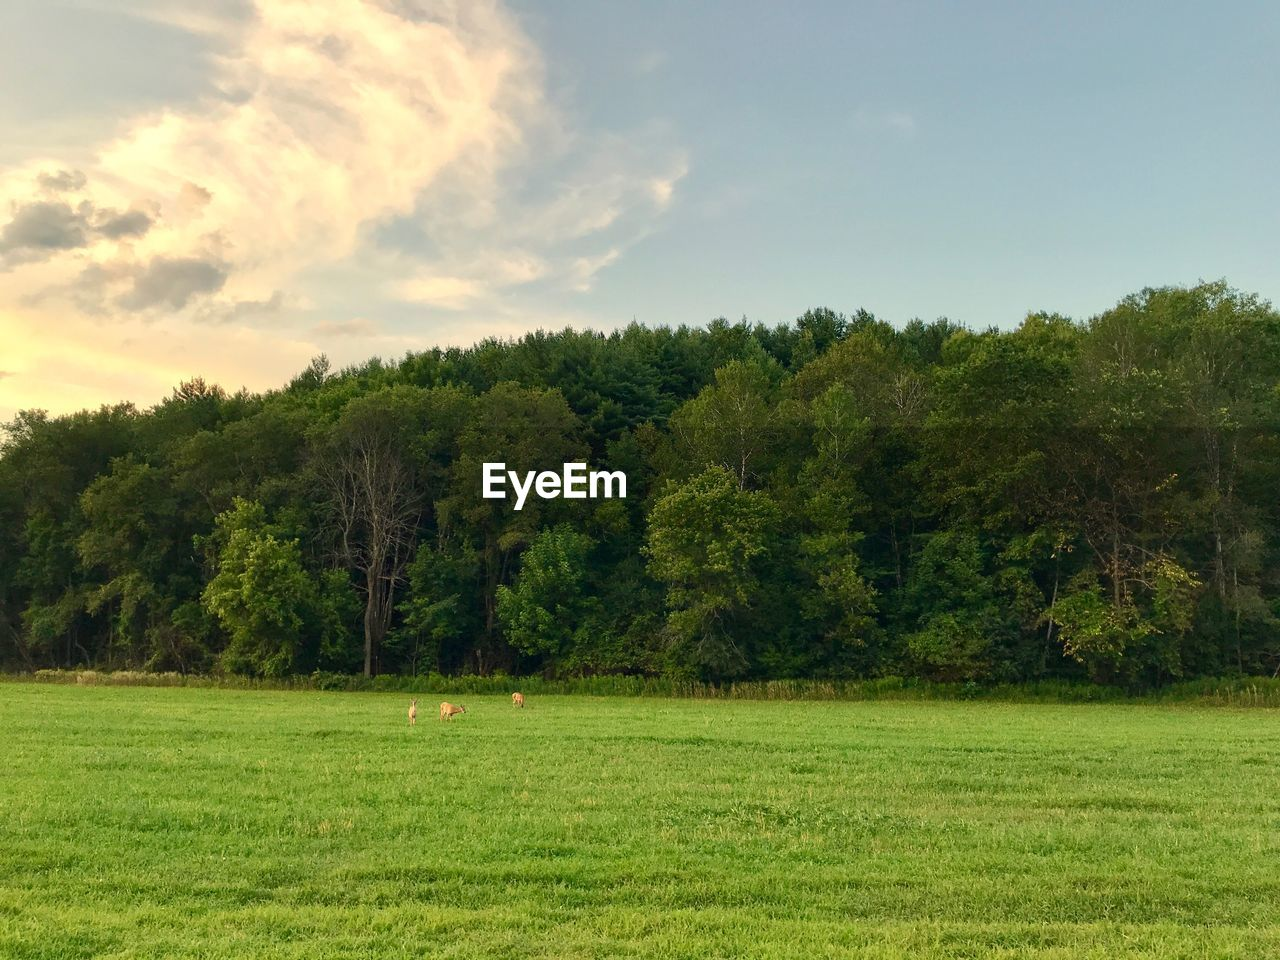 plant, tree, grass, green color, land, sky, beauty in nature, tranquil scene, environment, nature, landscape, tranquility, scenics - nature, growth, day, cloud - sky, field, no people, non-urban scene, outdoors